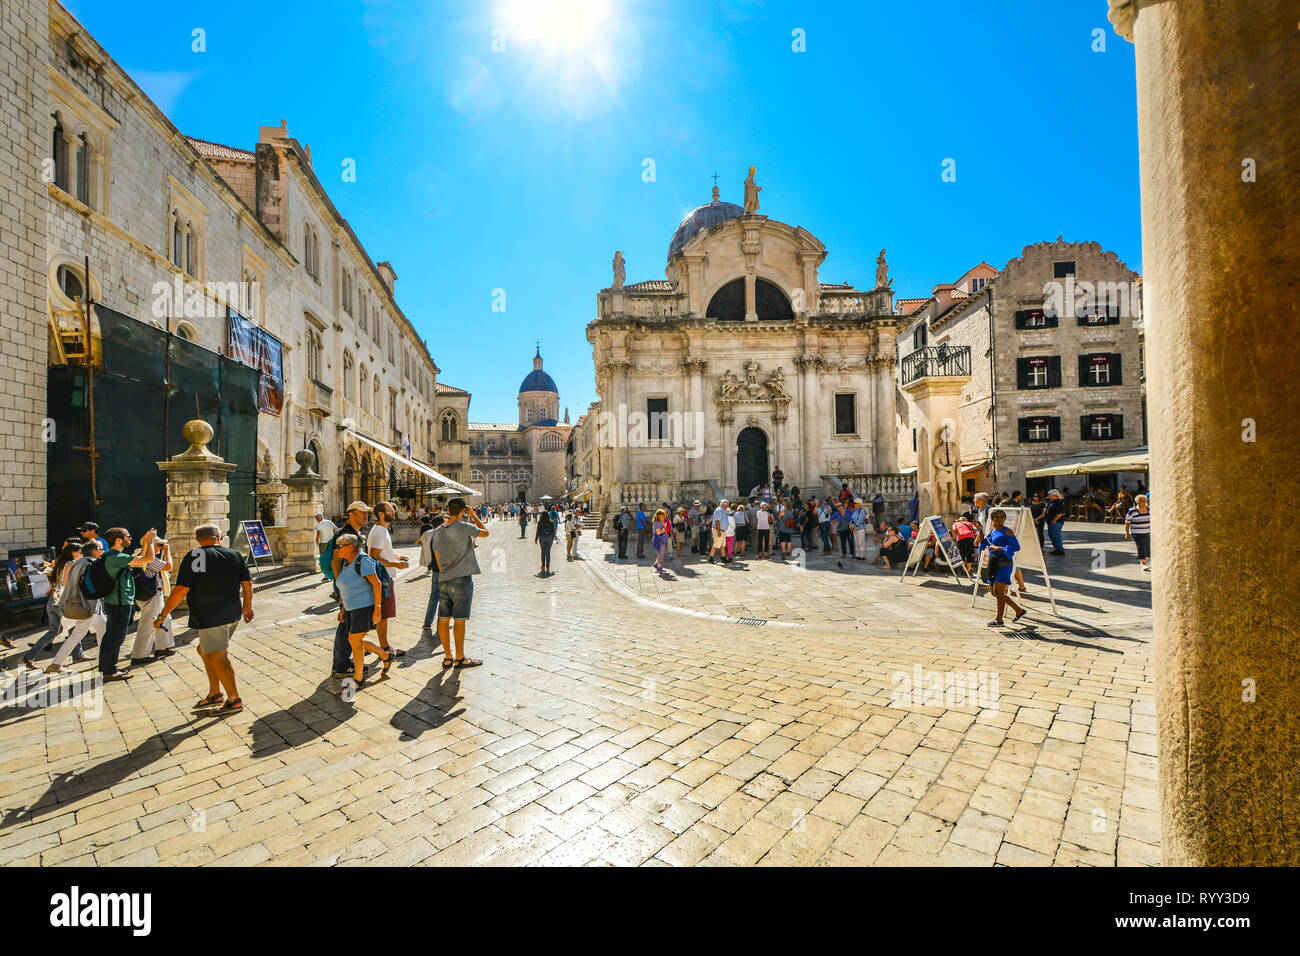 Tourists walk under the hot summer sun in the stradun or placa in Old Town Dubrovnik with St Blaise Church and the Dubrovnik Cathedral in view Stock Photo